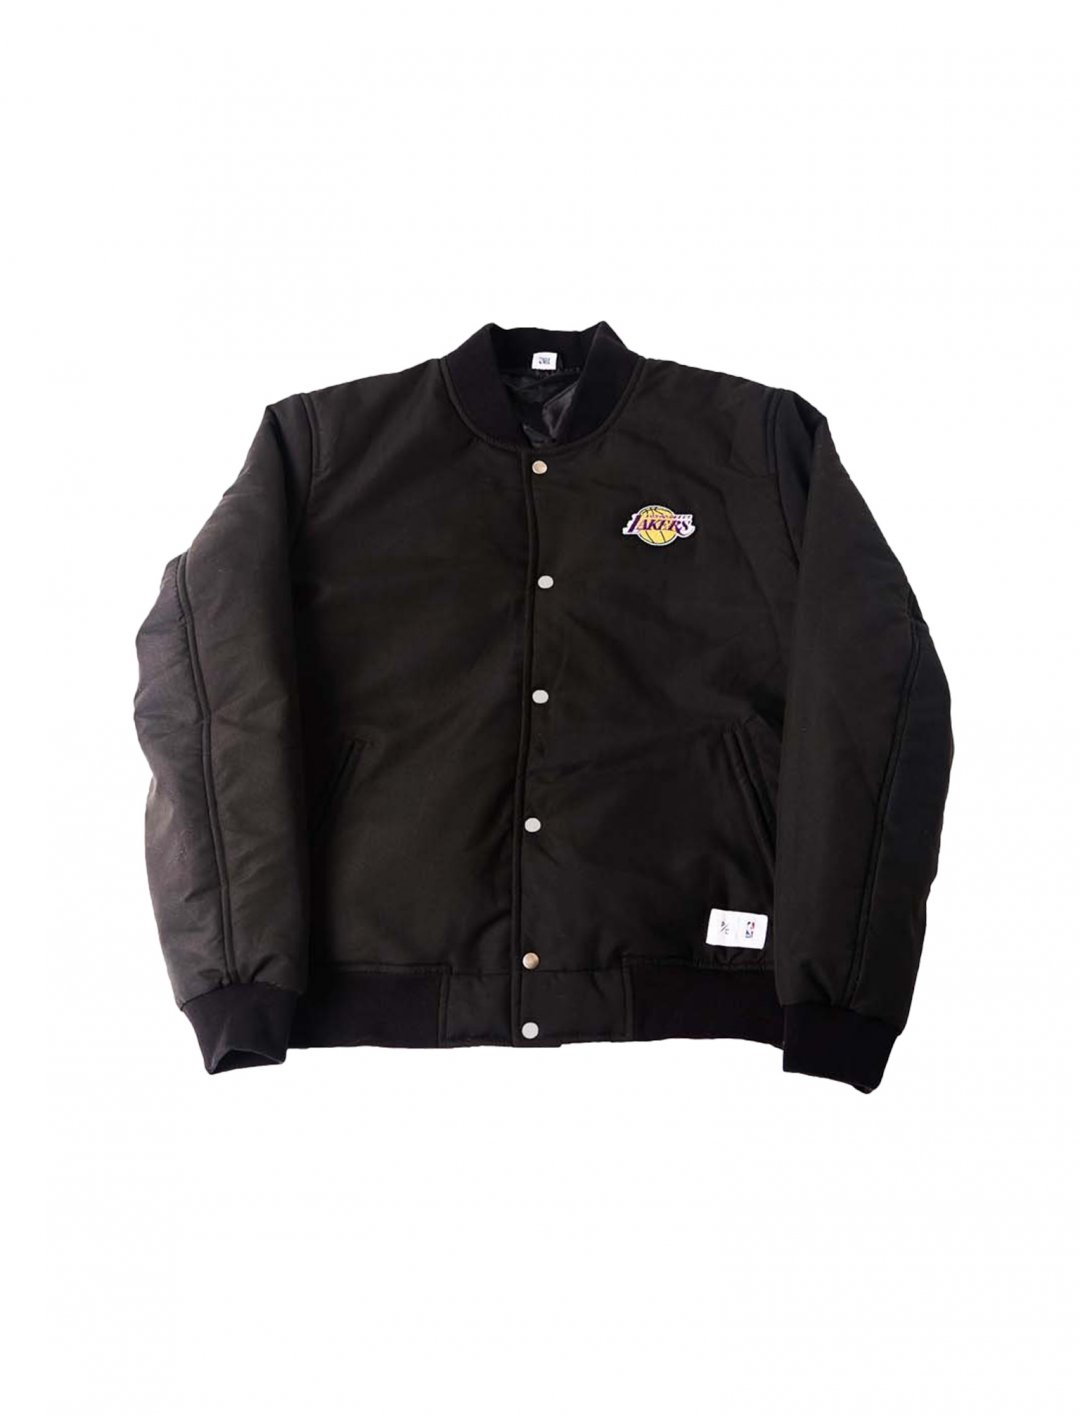 "Justin Bieber's Bomber Jacket {""id"":5,""product_section_id"":1,""name"":""Clothing"",""order"":5} NBA x P/C"